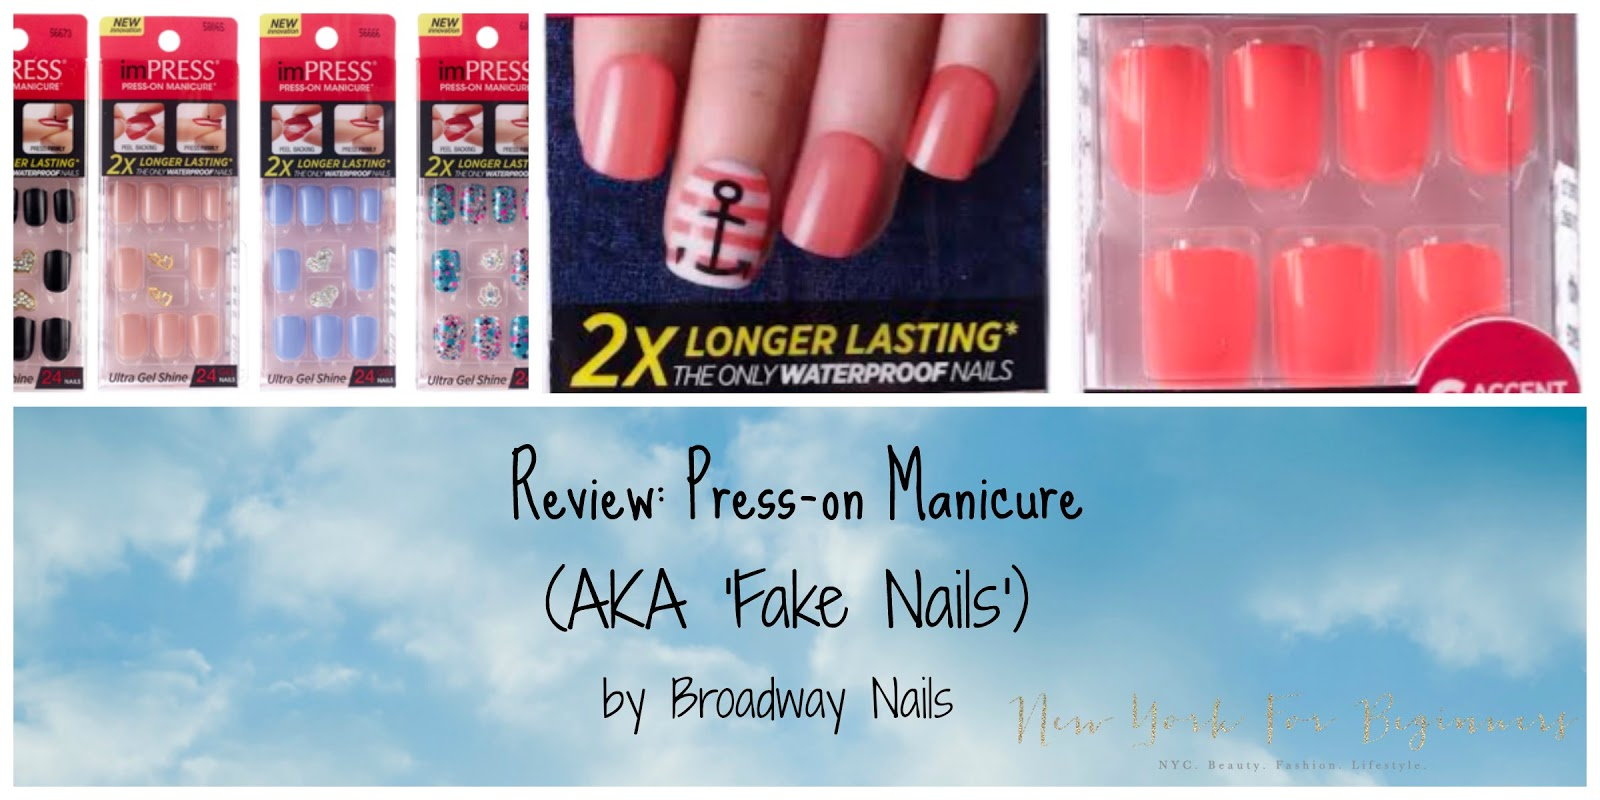 New York For Beginners: Why I got hooked up on fake press-on nails ...